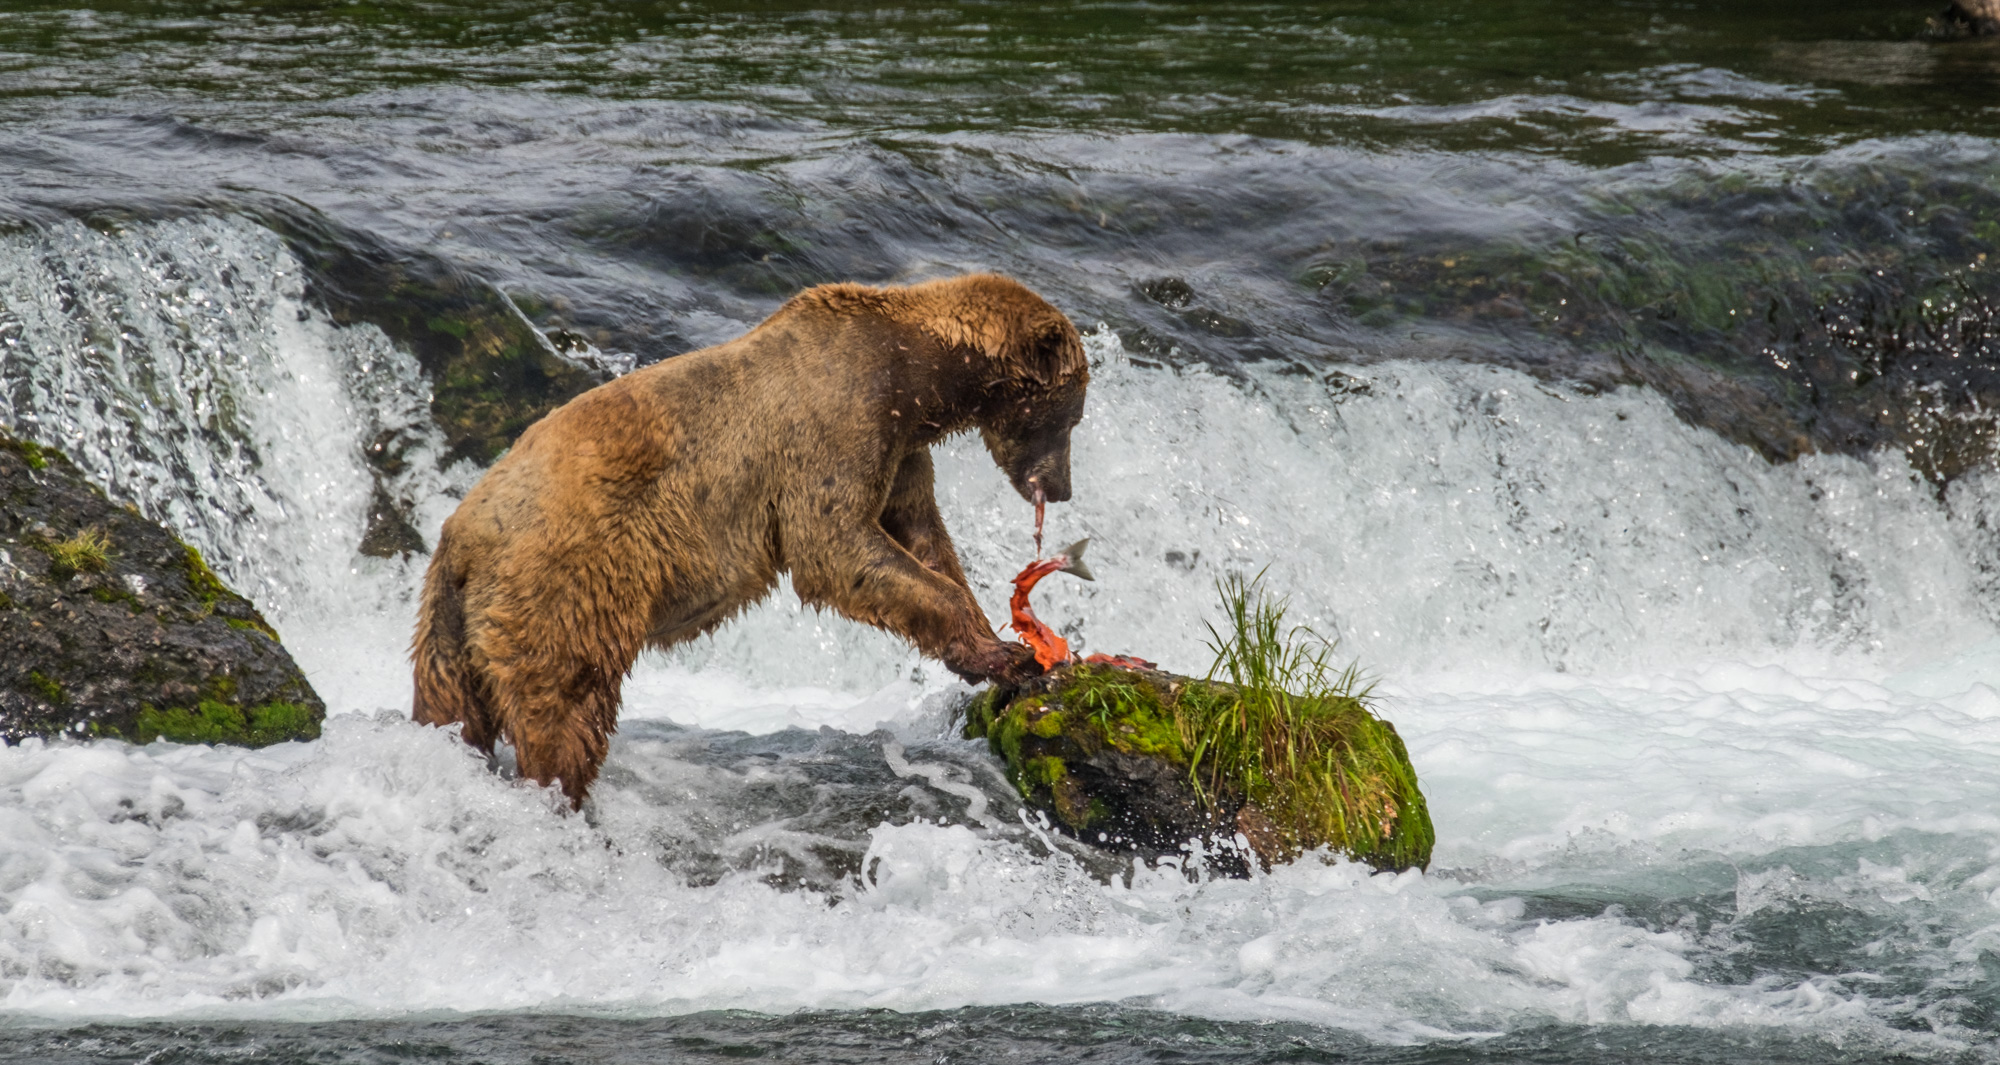 This bear loved to eat salmon on this rock.